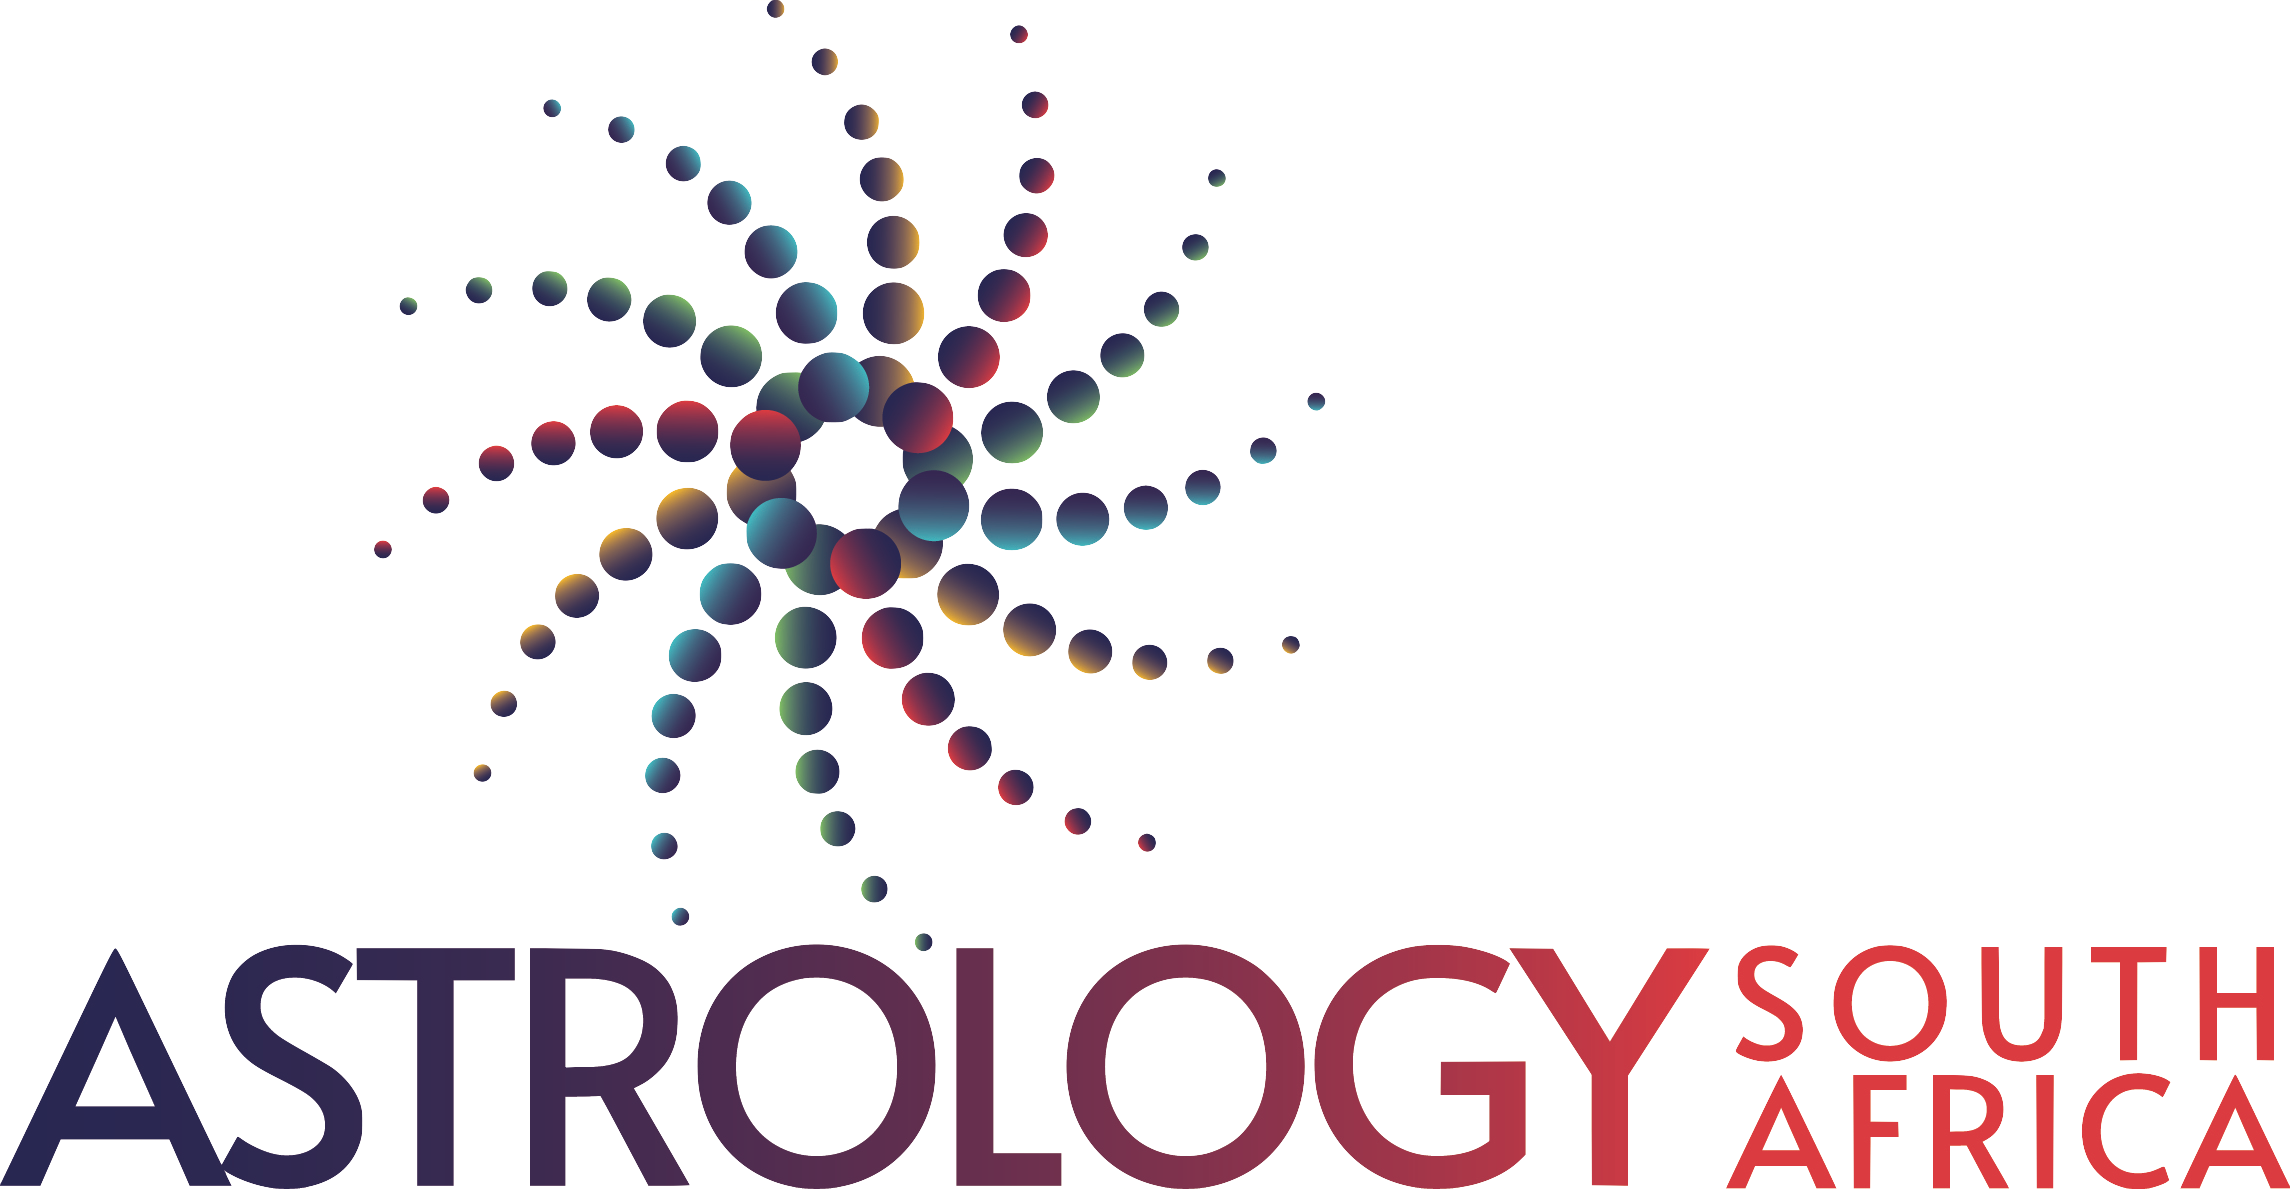 Astrology South Africa - Logo